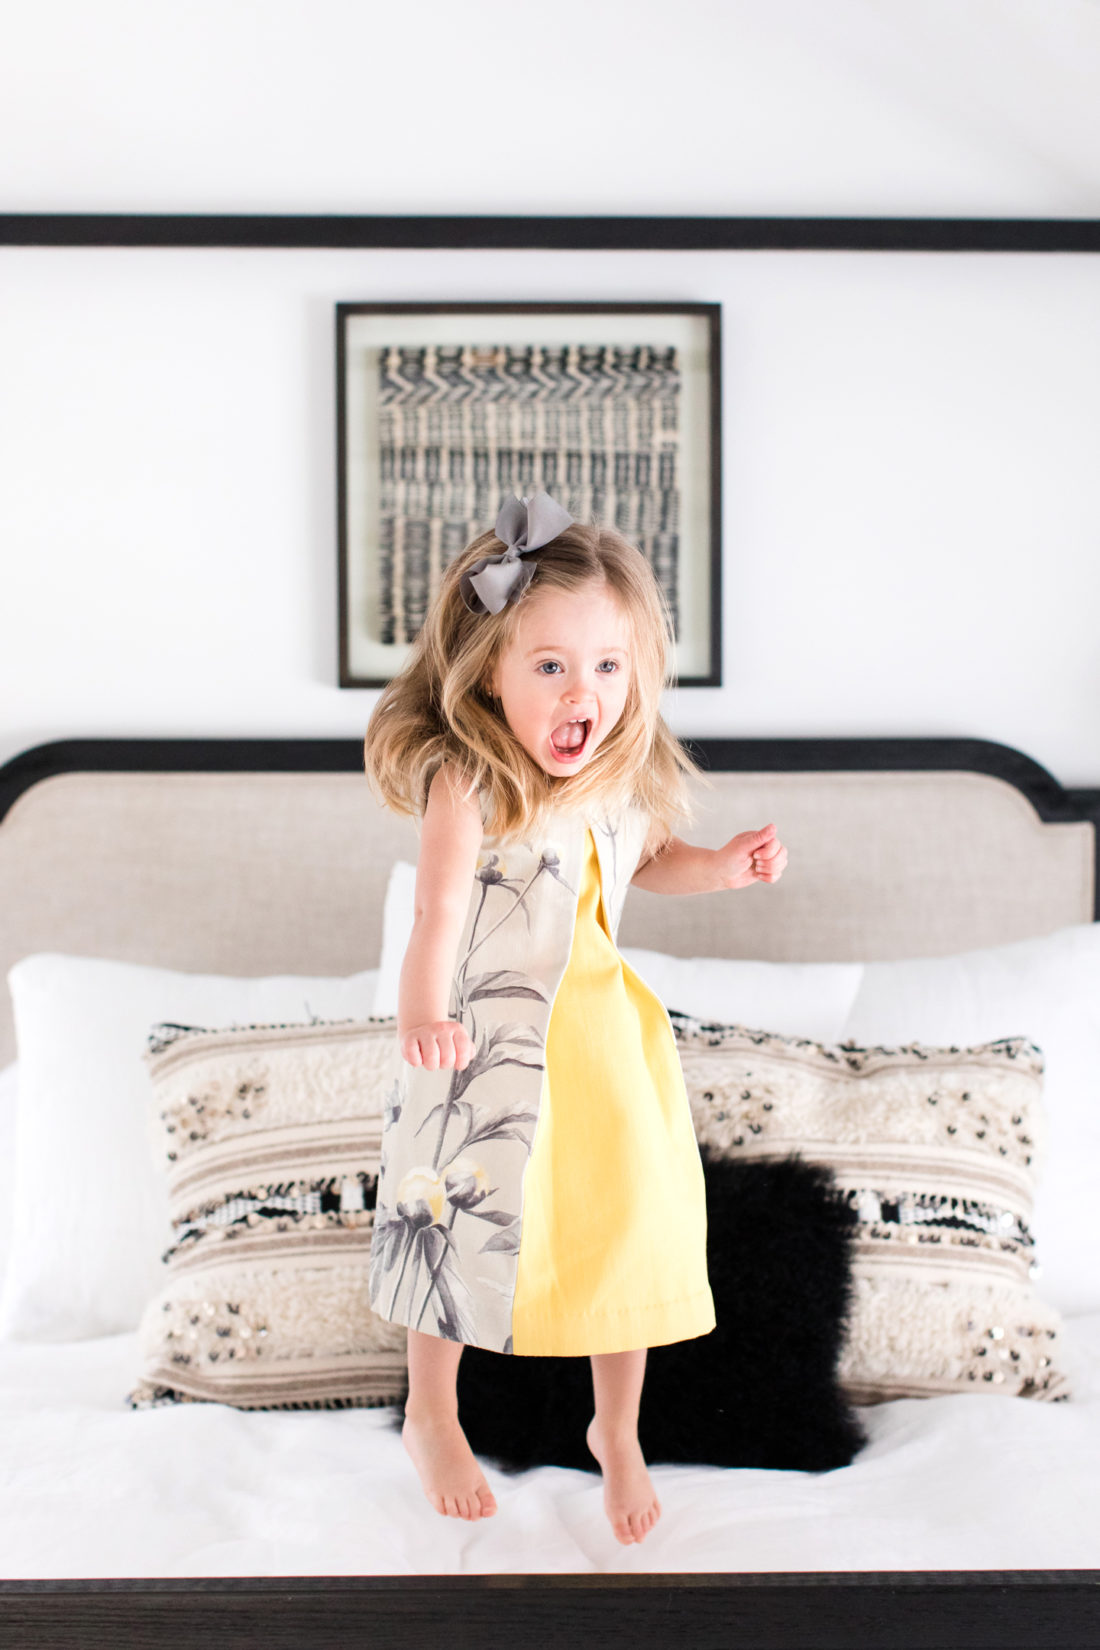 Marlowe Martino jumps happily on her mother's bed